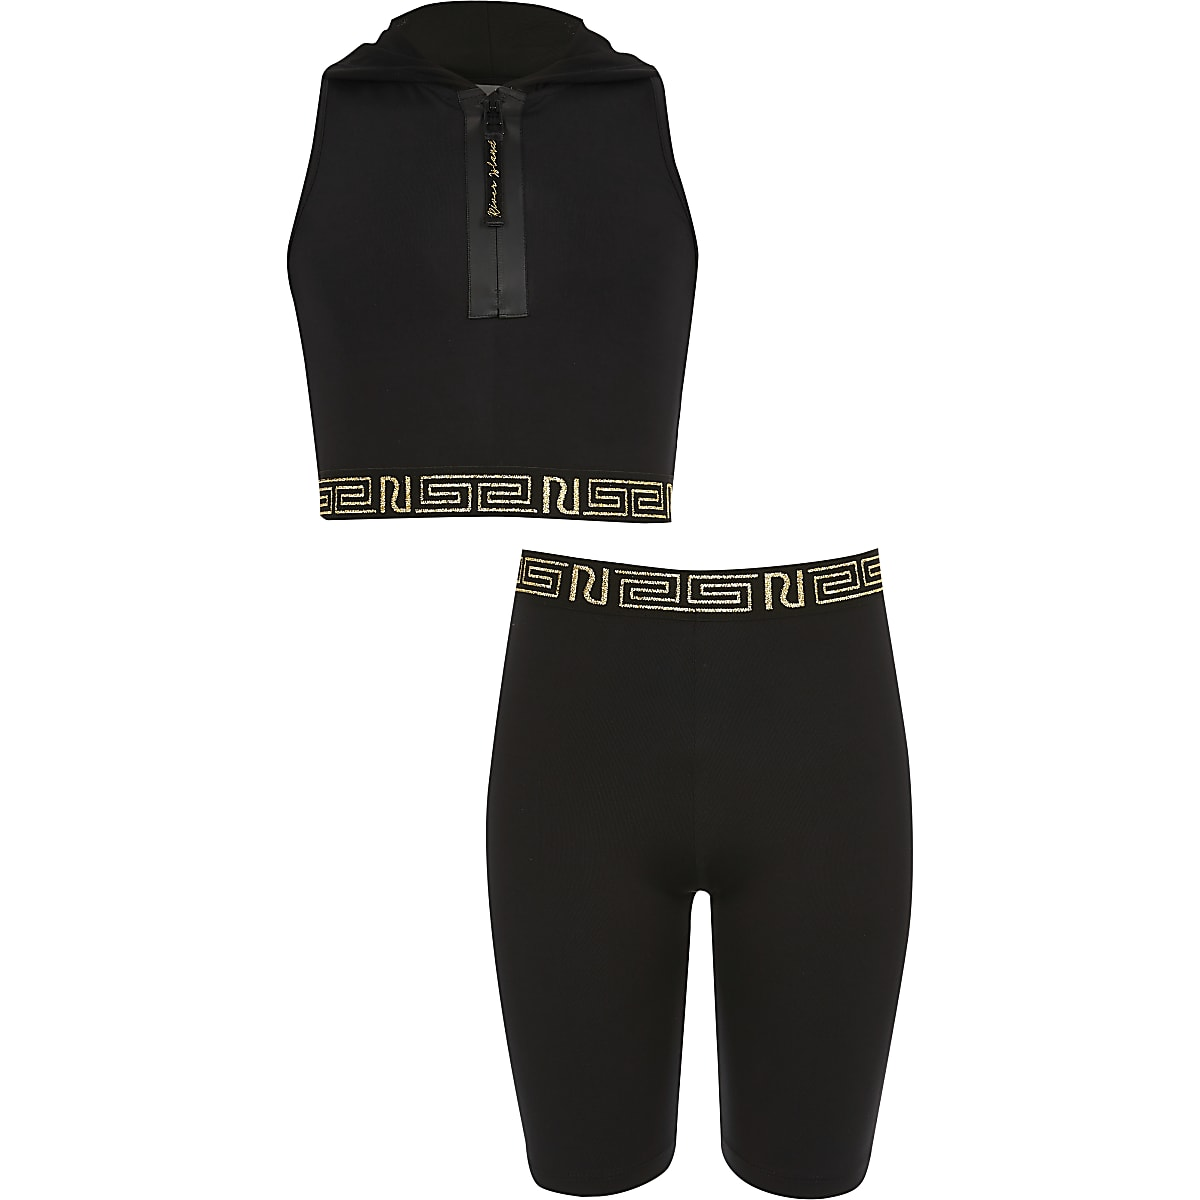 Girls RI Active black hooded crop top outfit